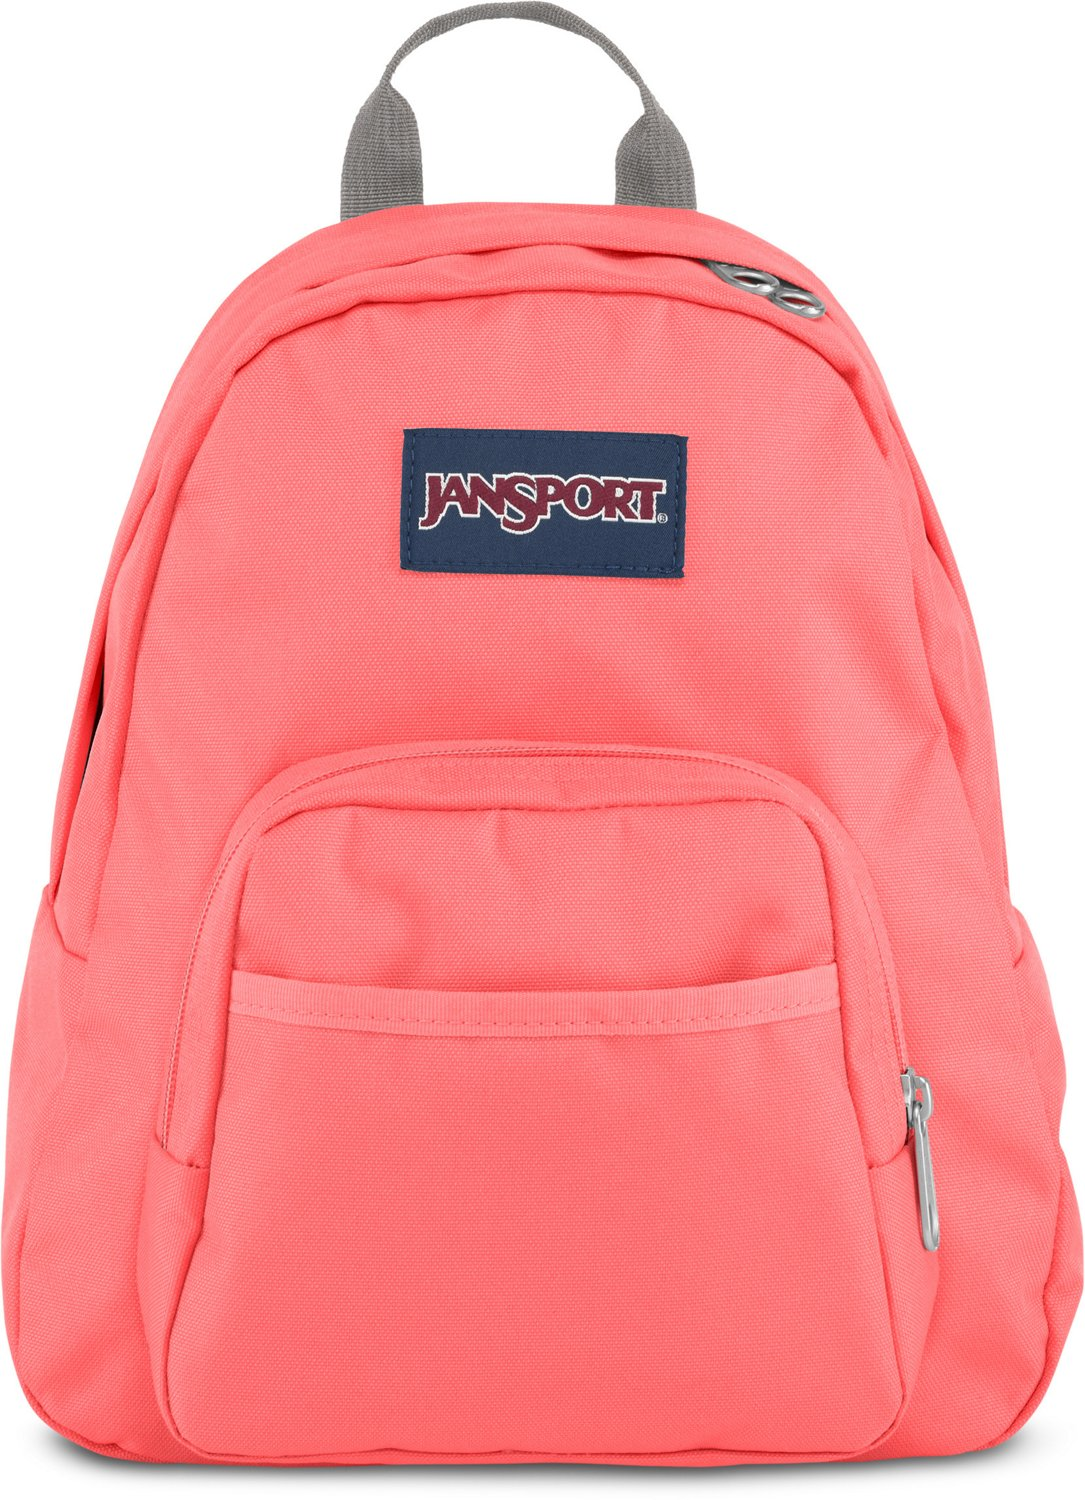 JanSport Half Pint Backpack  8460a671a9ba1